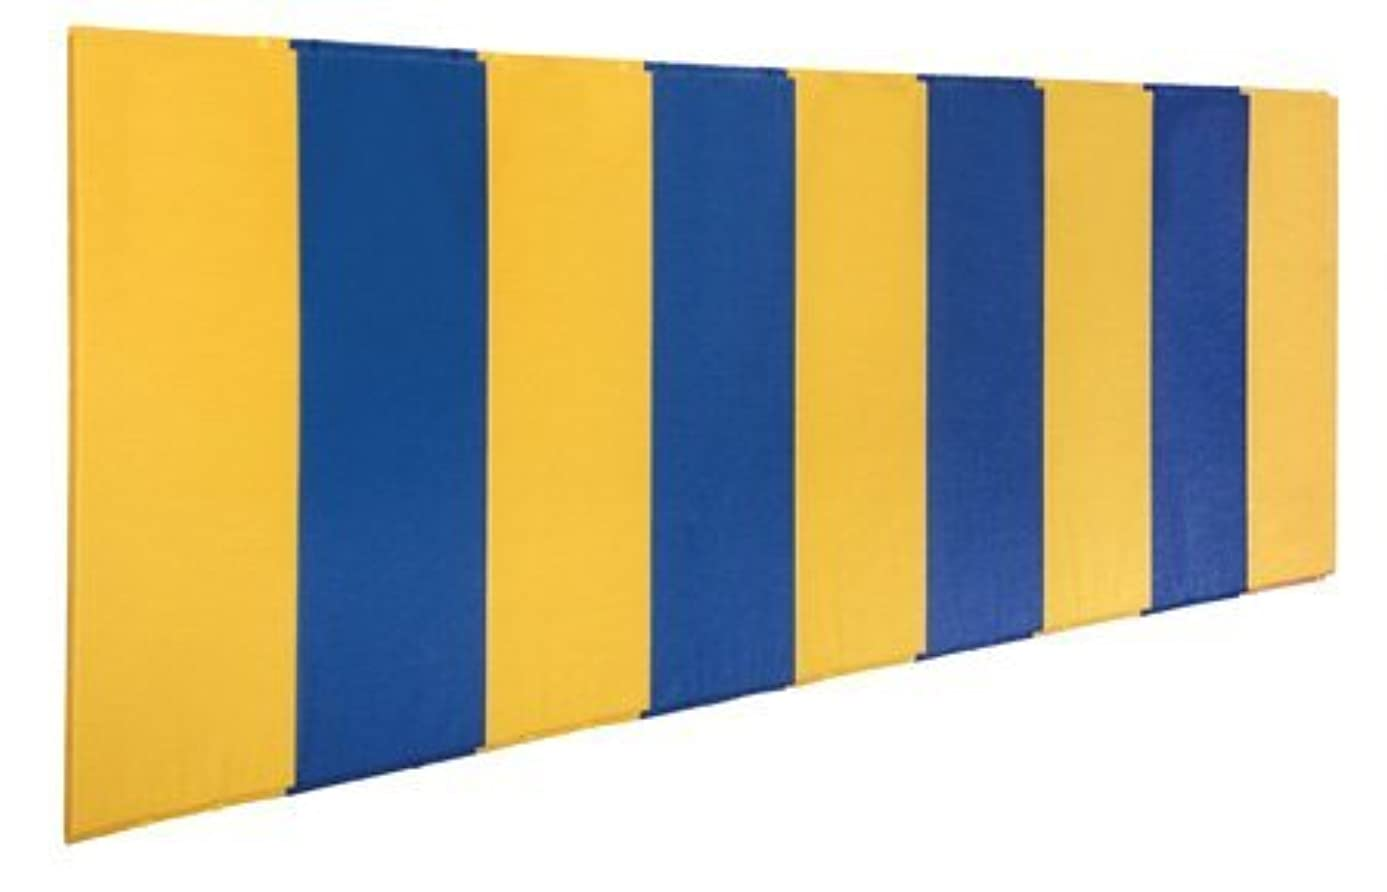 First Team FT456-FO Foam-Vinyl 2 X 6 ft. BodyGuard Wall Pad with Foam Only44; Navy Blue